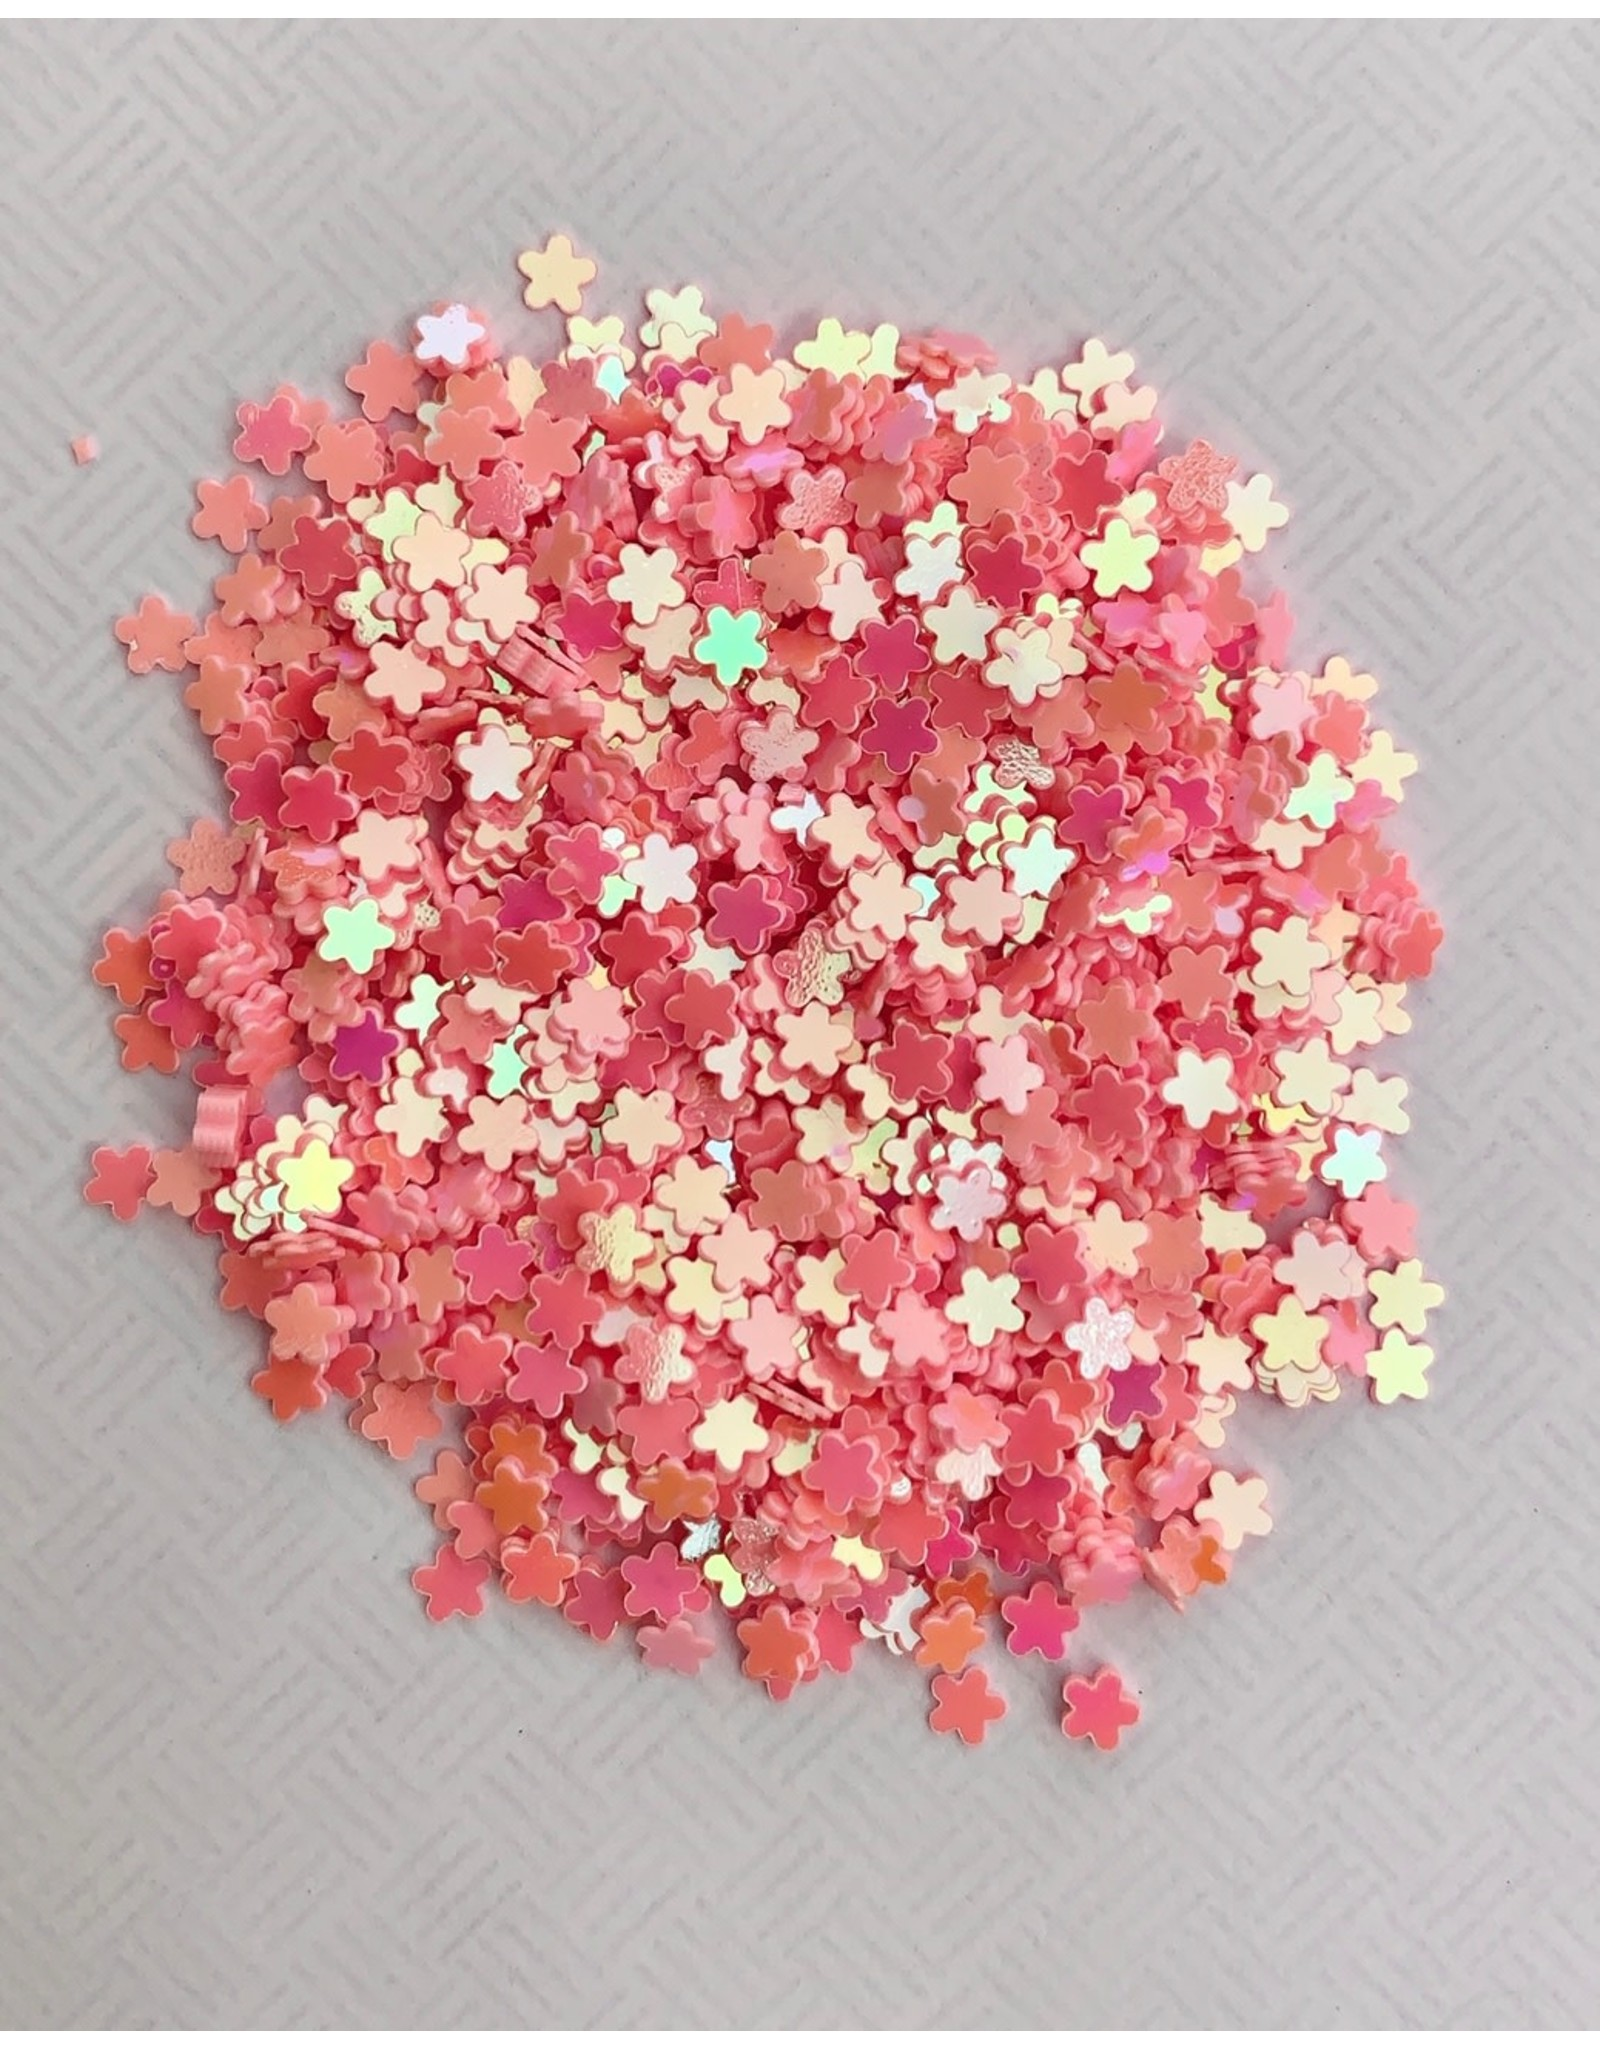 Paws-Itively Pawsome Designs Shaker Confetti - Mini Stars - Pink AB